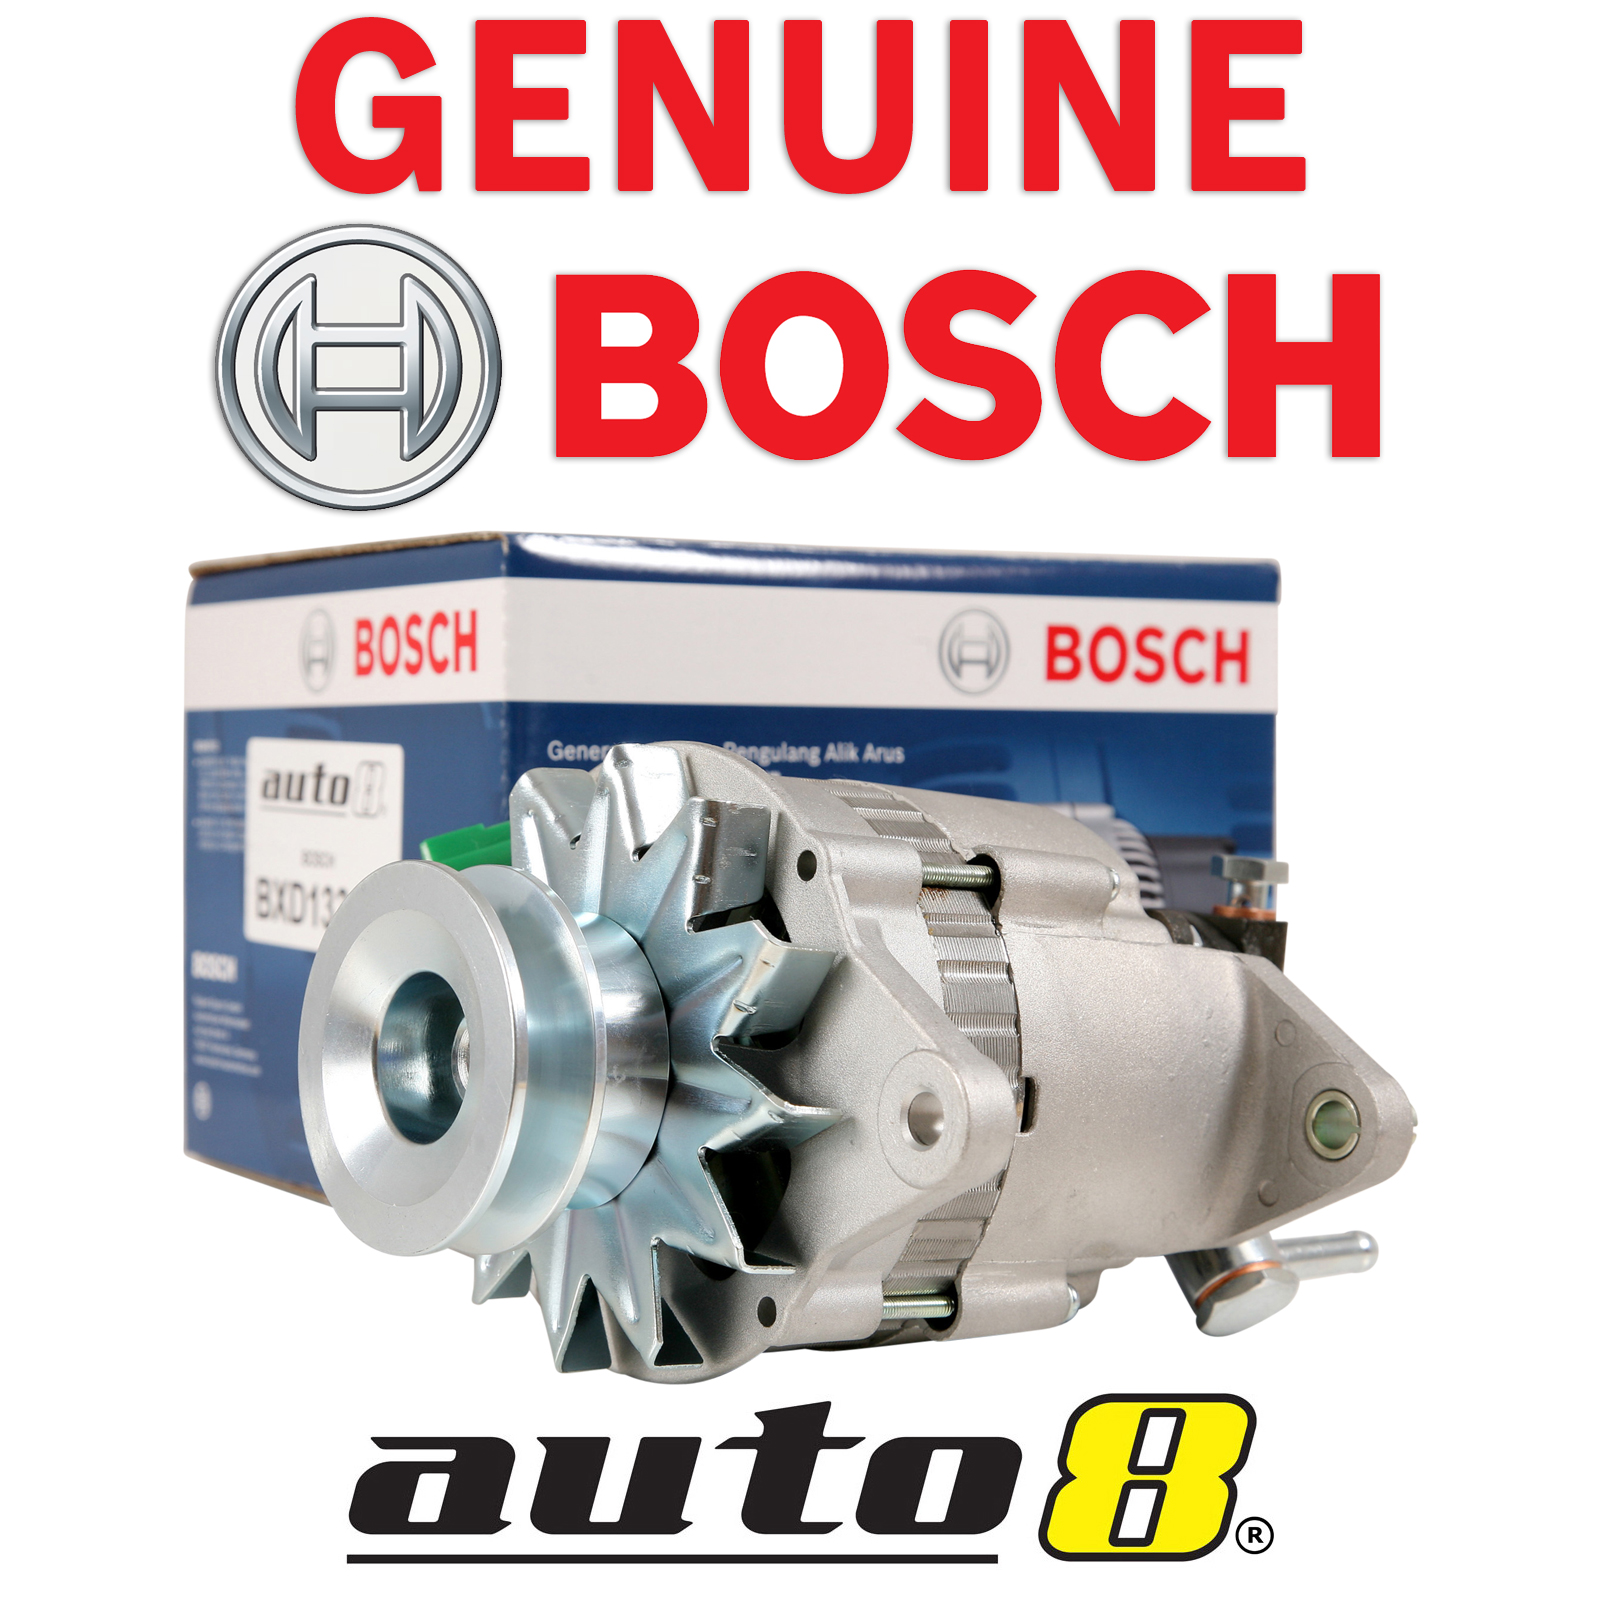 hight resolution of details about bosch alternator to fit toyota landcruiser 4 0l diesel 2h 1980 1990 hj60 hj75